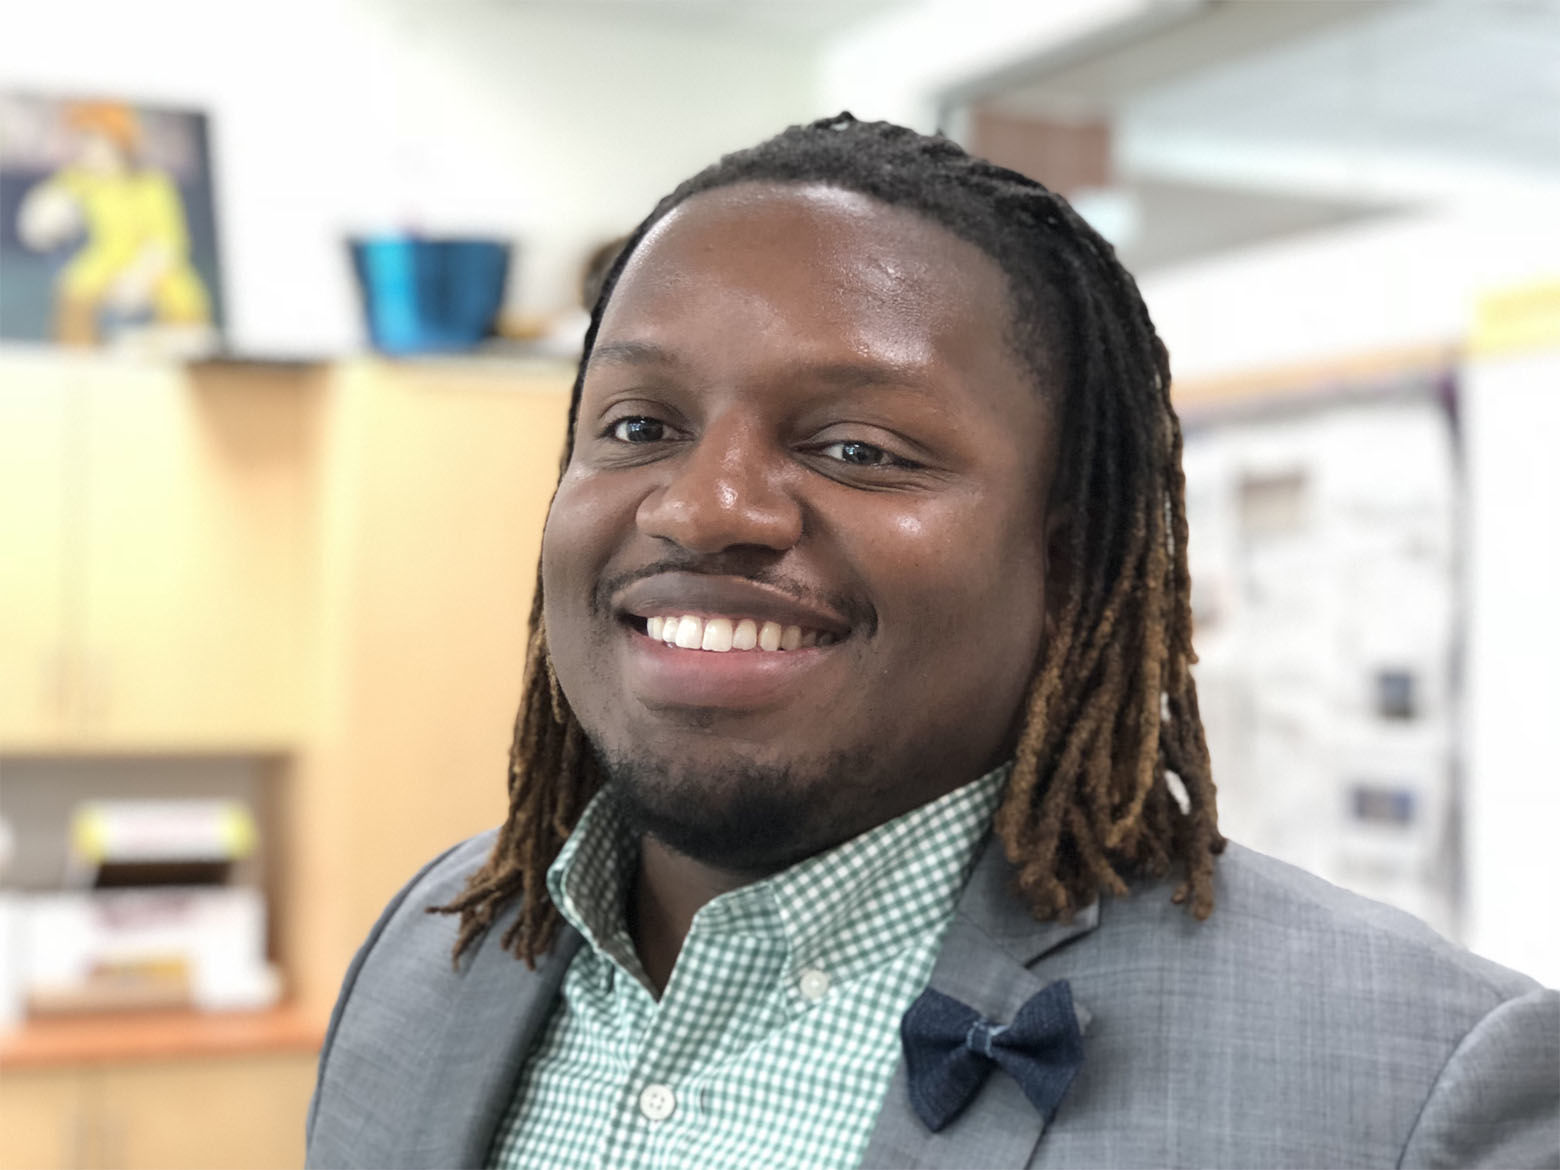 """Marqwan Jermaine Sirls will teach English at Bowie High School. He says he's eager to deliver a """"good, rigorous education.""""  He says his own high school experience gave him the tools and the confidence to achieve his goals. (WTOP/Kate Ryan)"""